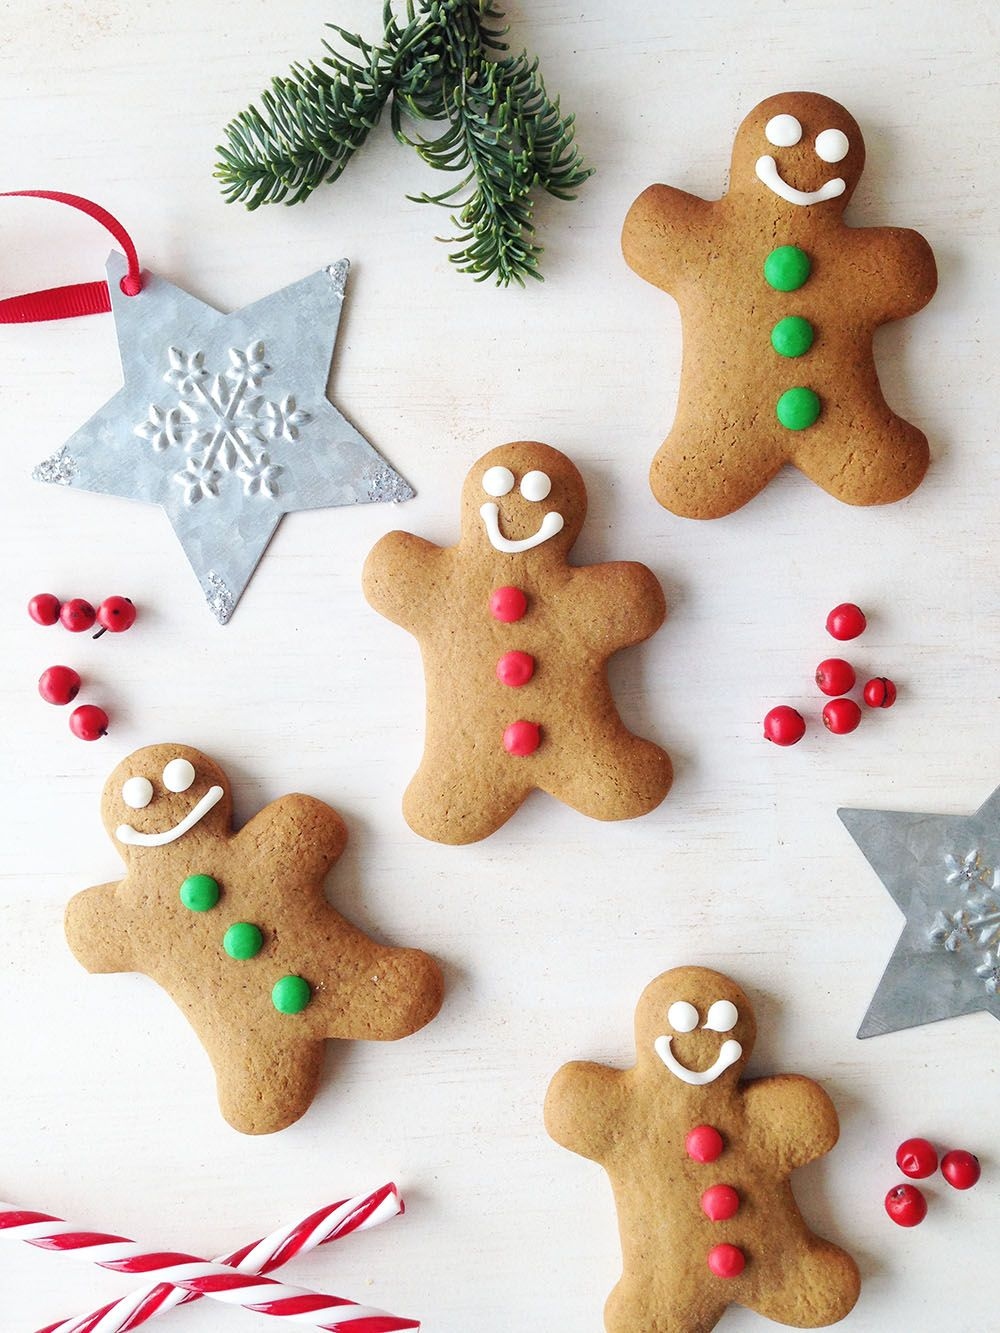 Gingerbread men with red and green buttons for Christmas